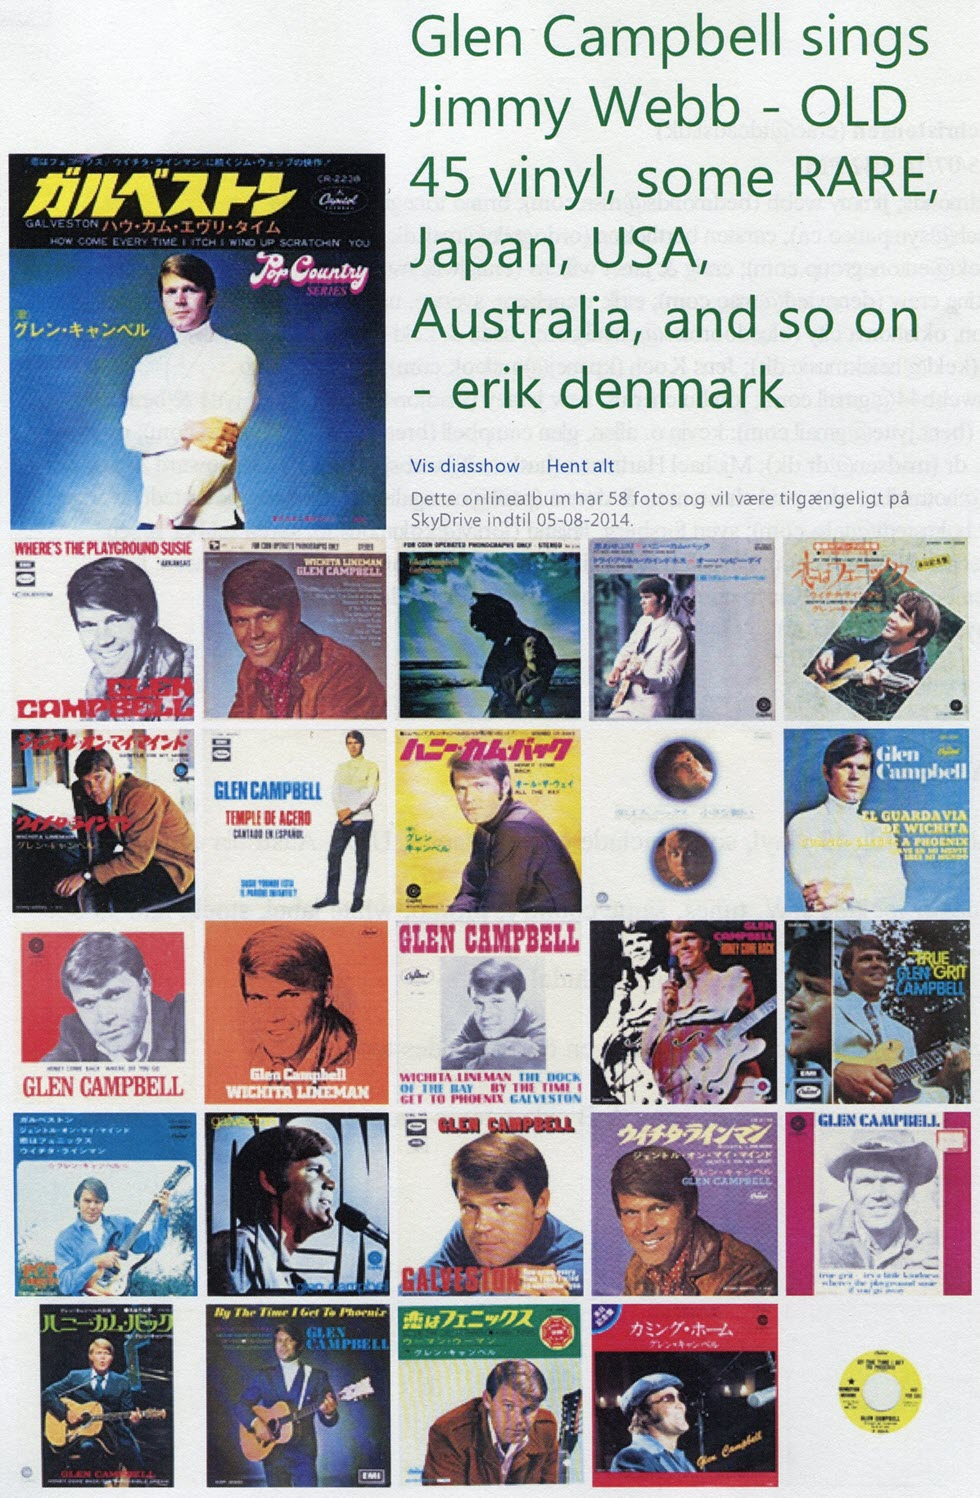 Erik the Dane's 45 Vinyl Collection_Glen Campbell Sings Jimmy Webb Songs_gcf.jpg